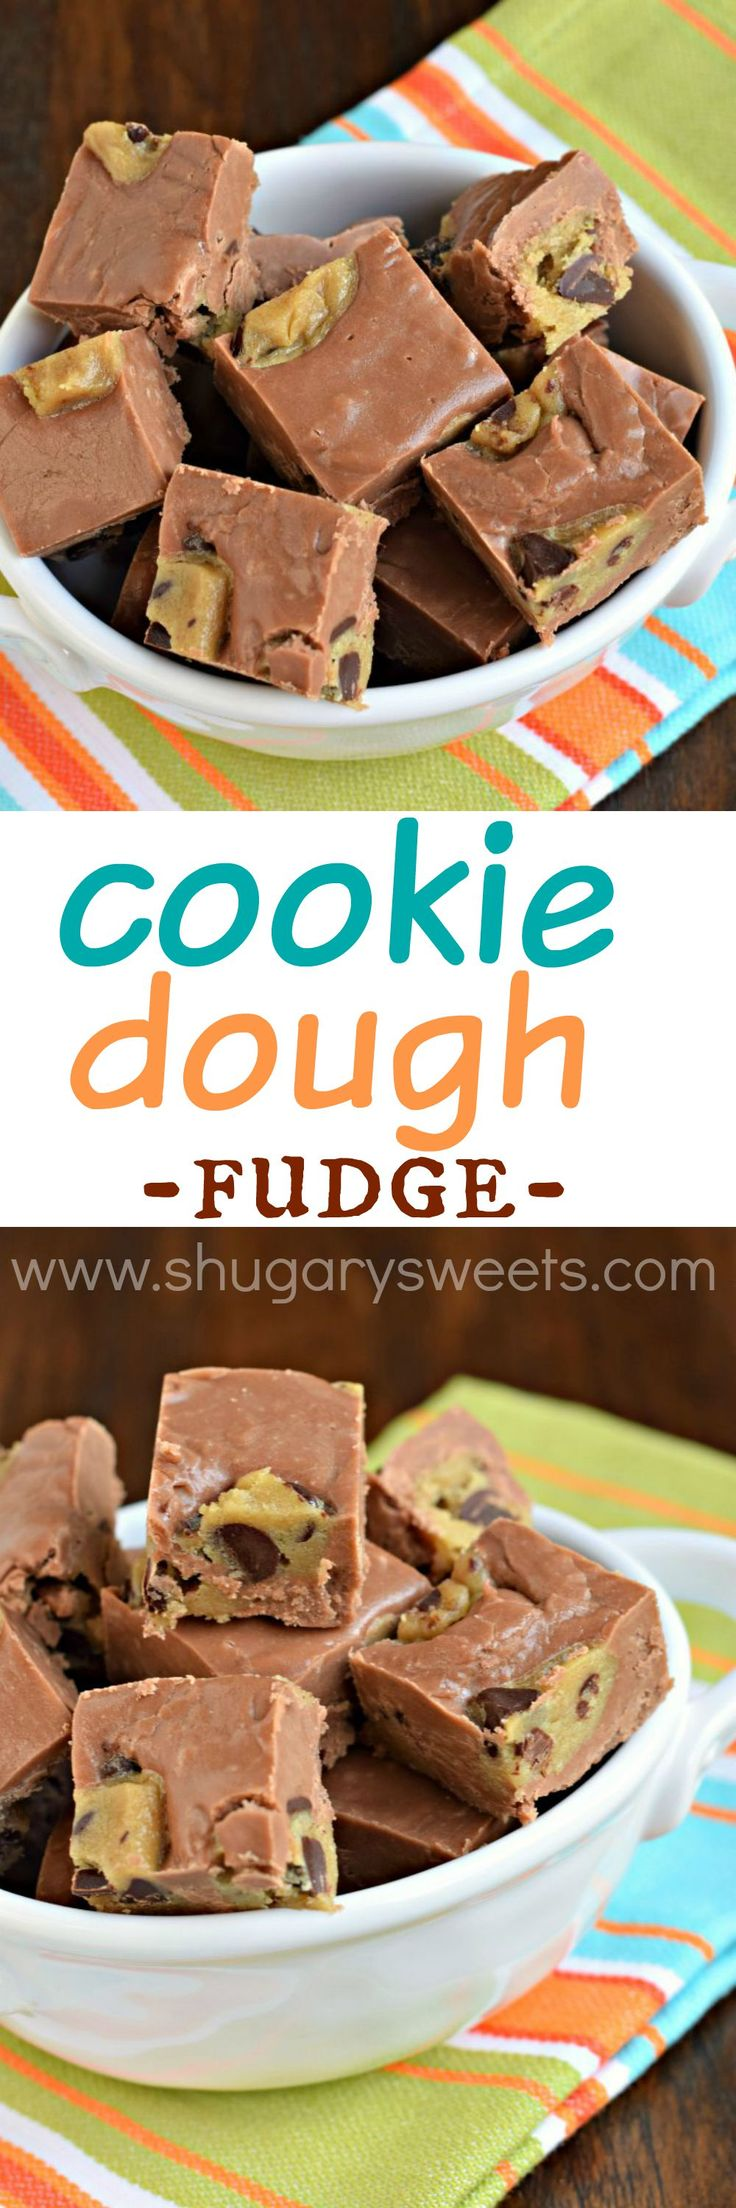 how to make cookie dough fast and easy